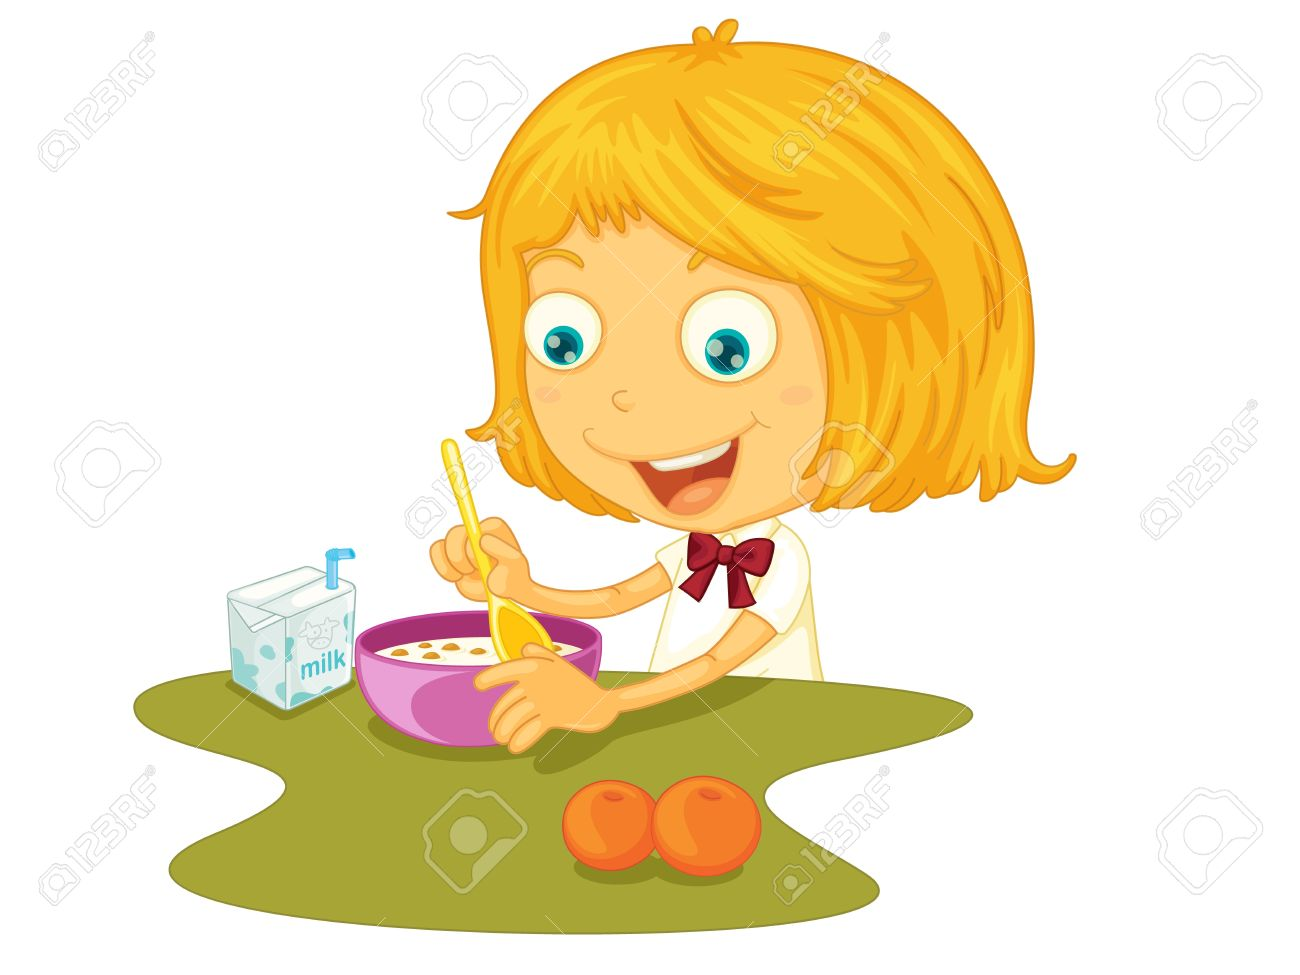 Illustration of child eating at a table Stock Vector - 13158324